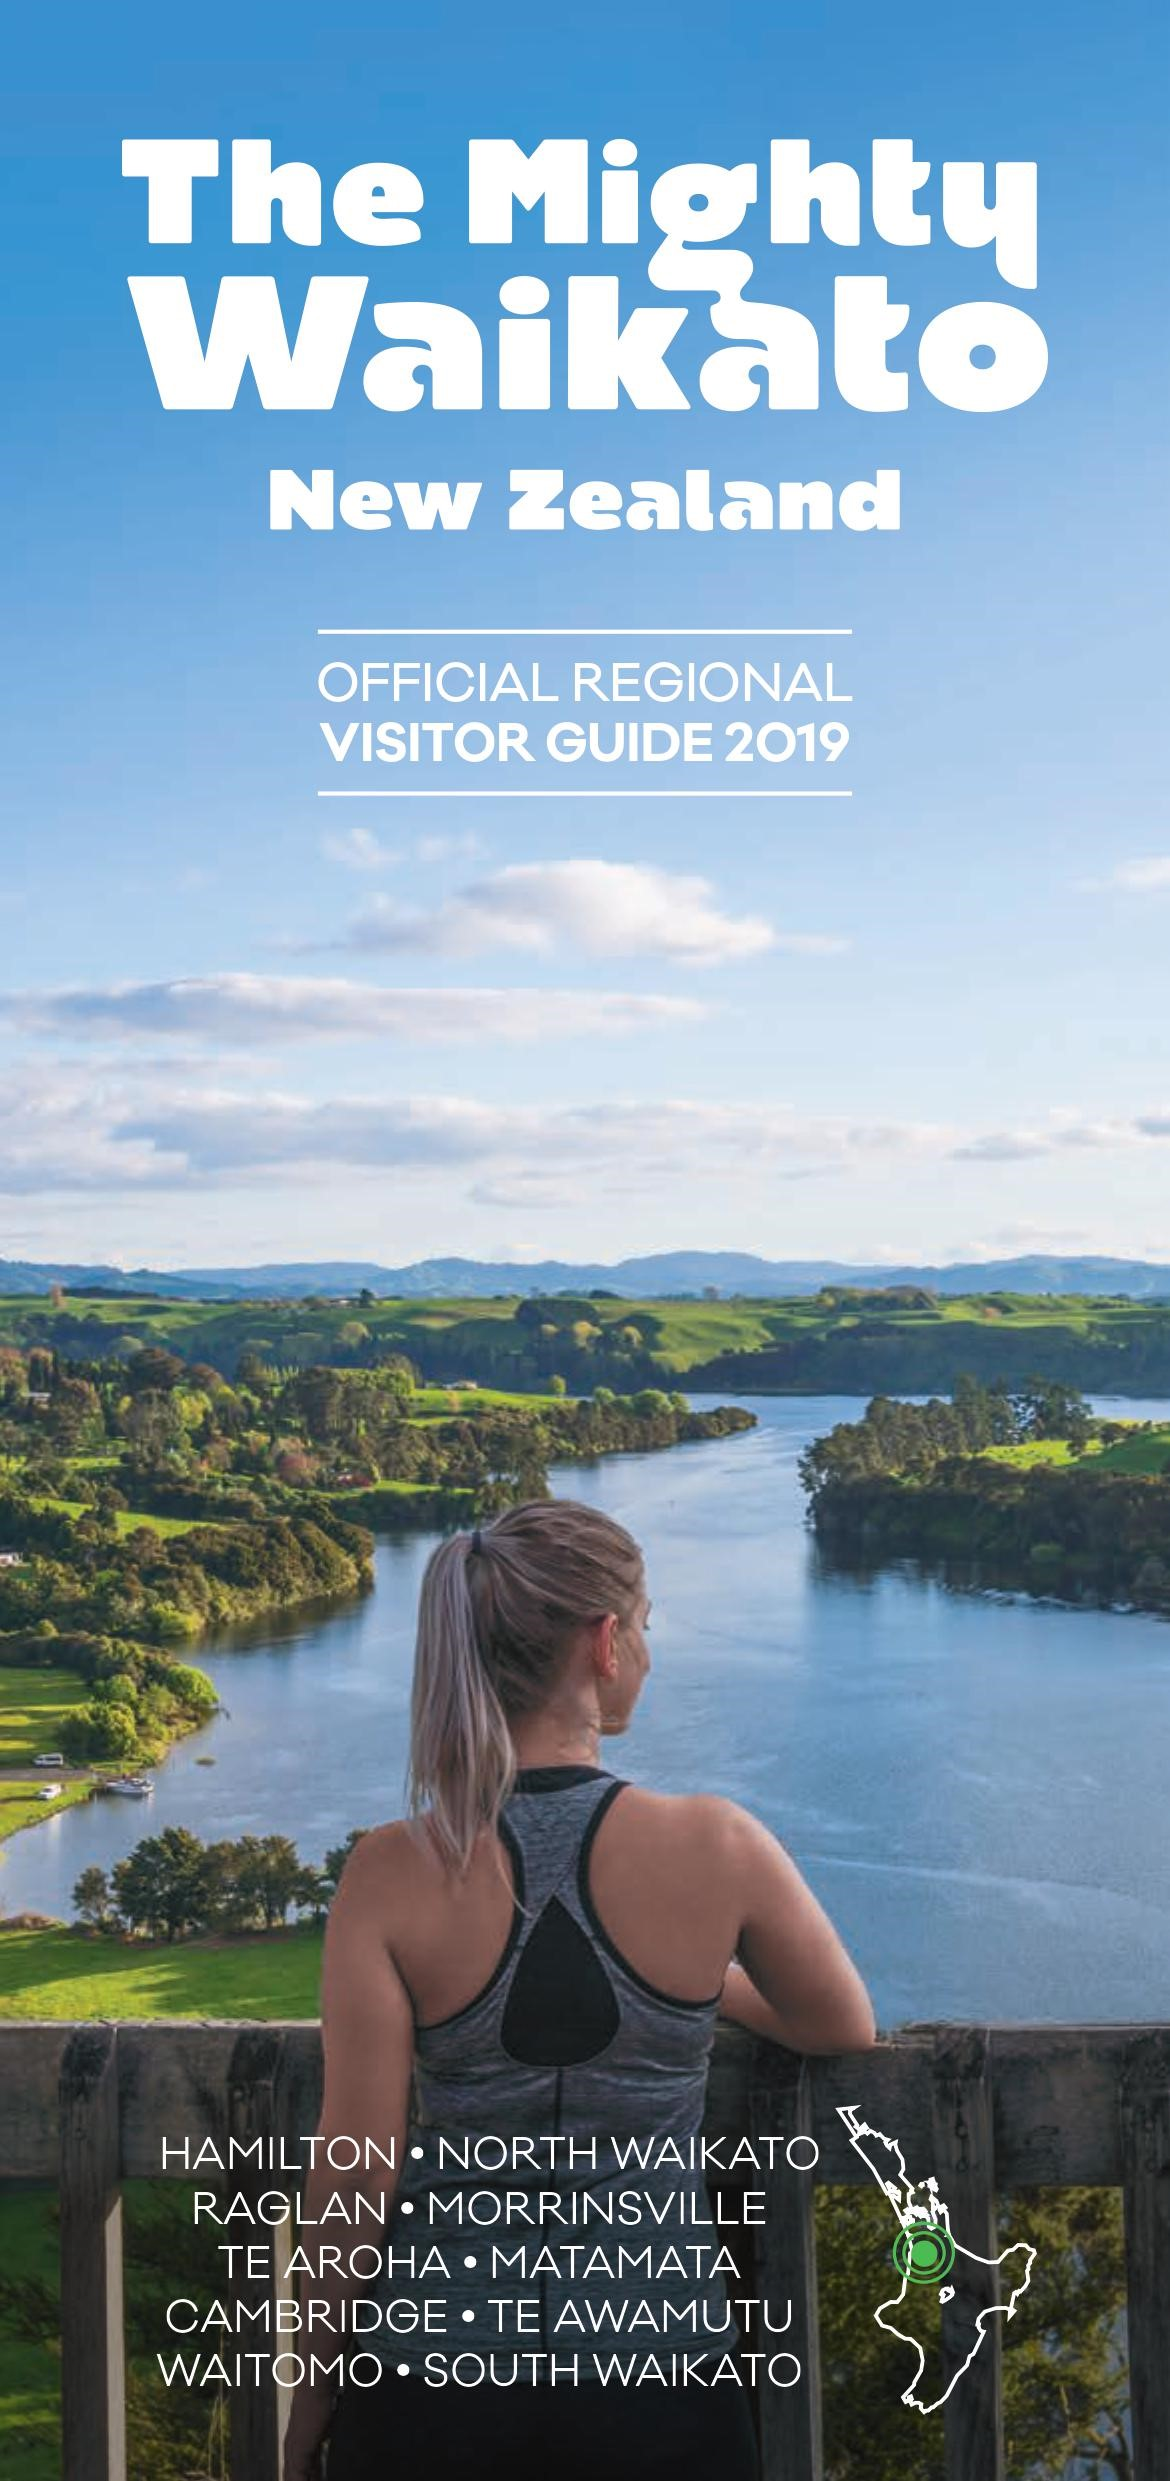 The Mighty Waikato Visitor Guide 2019